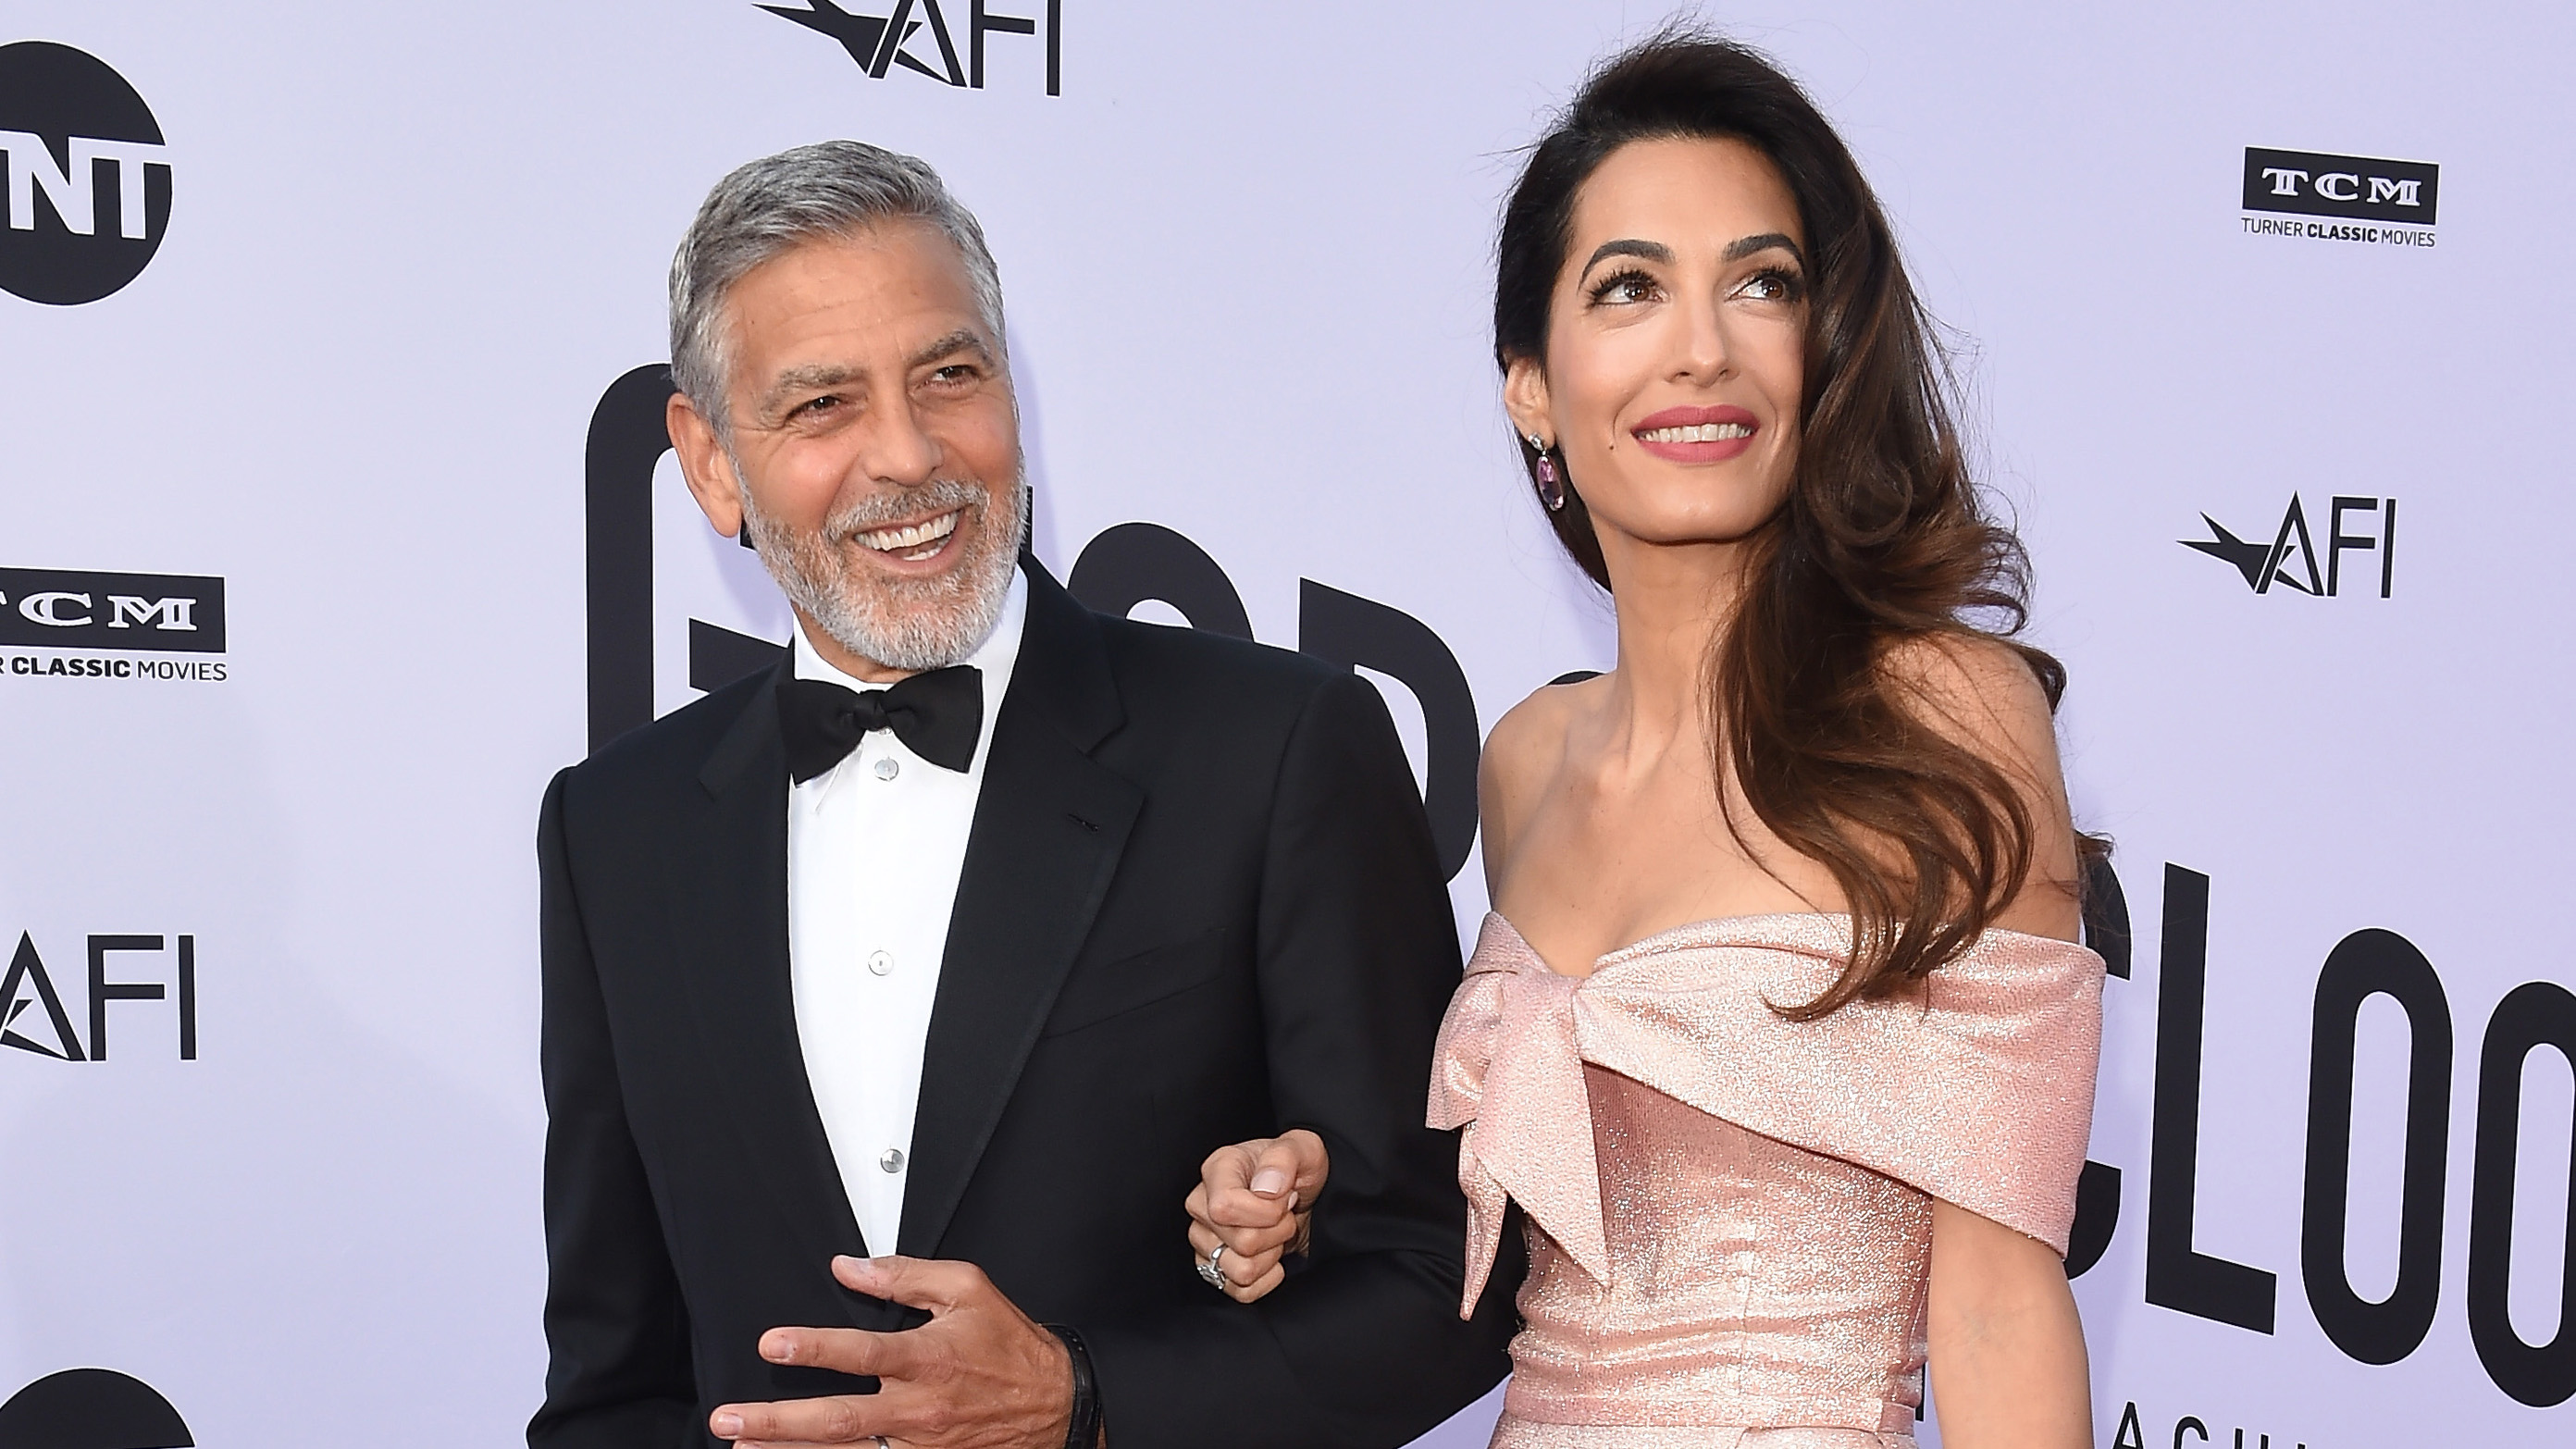 Do George Clooney and Amal Clooney Want More Kids? Friends